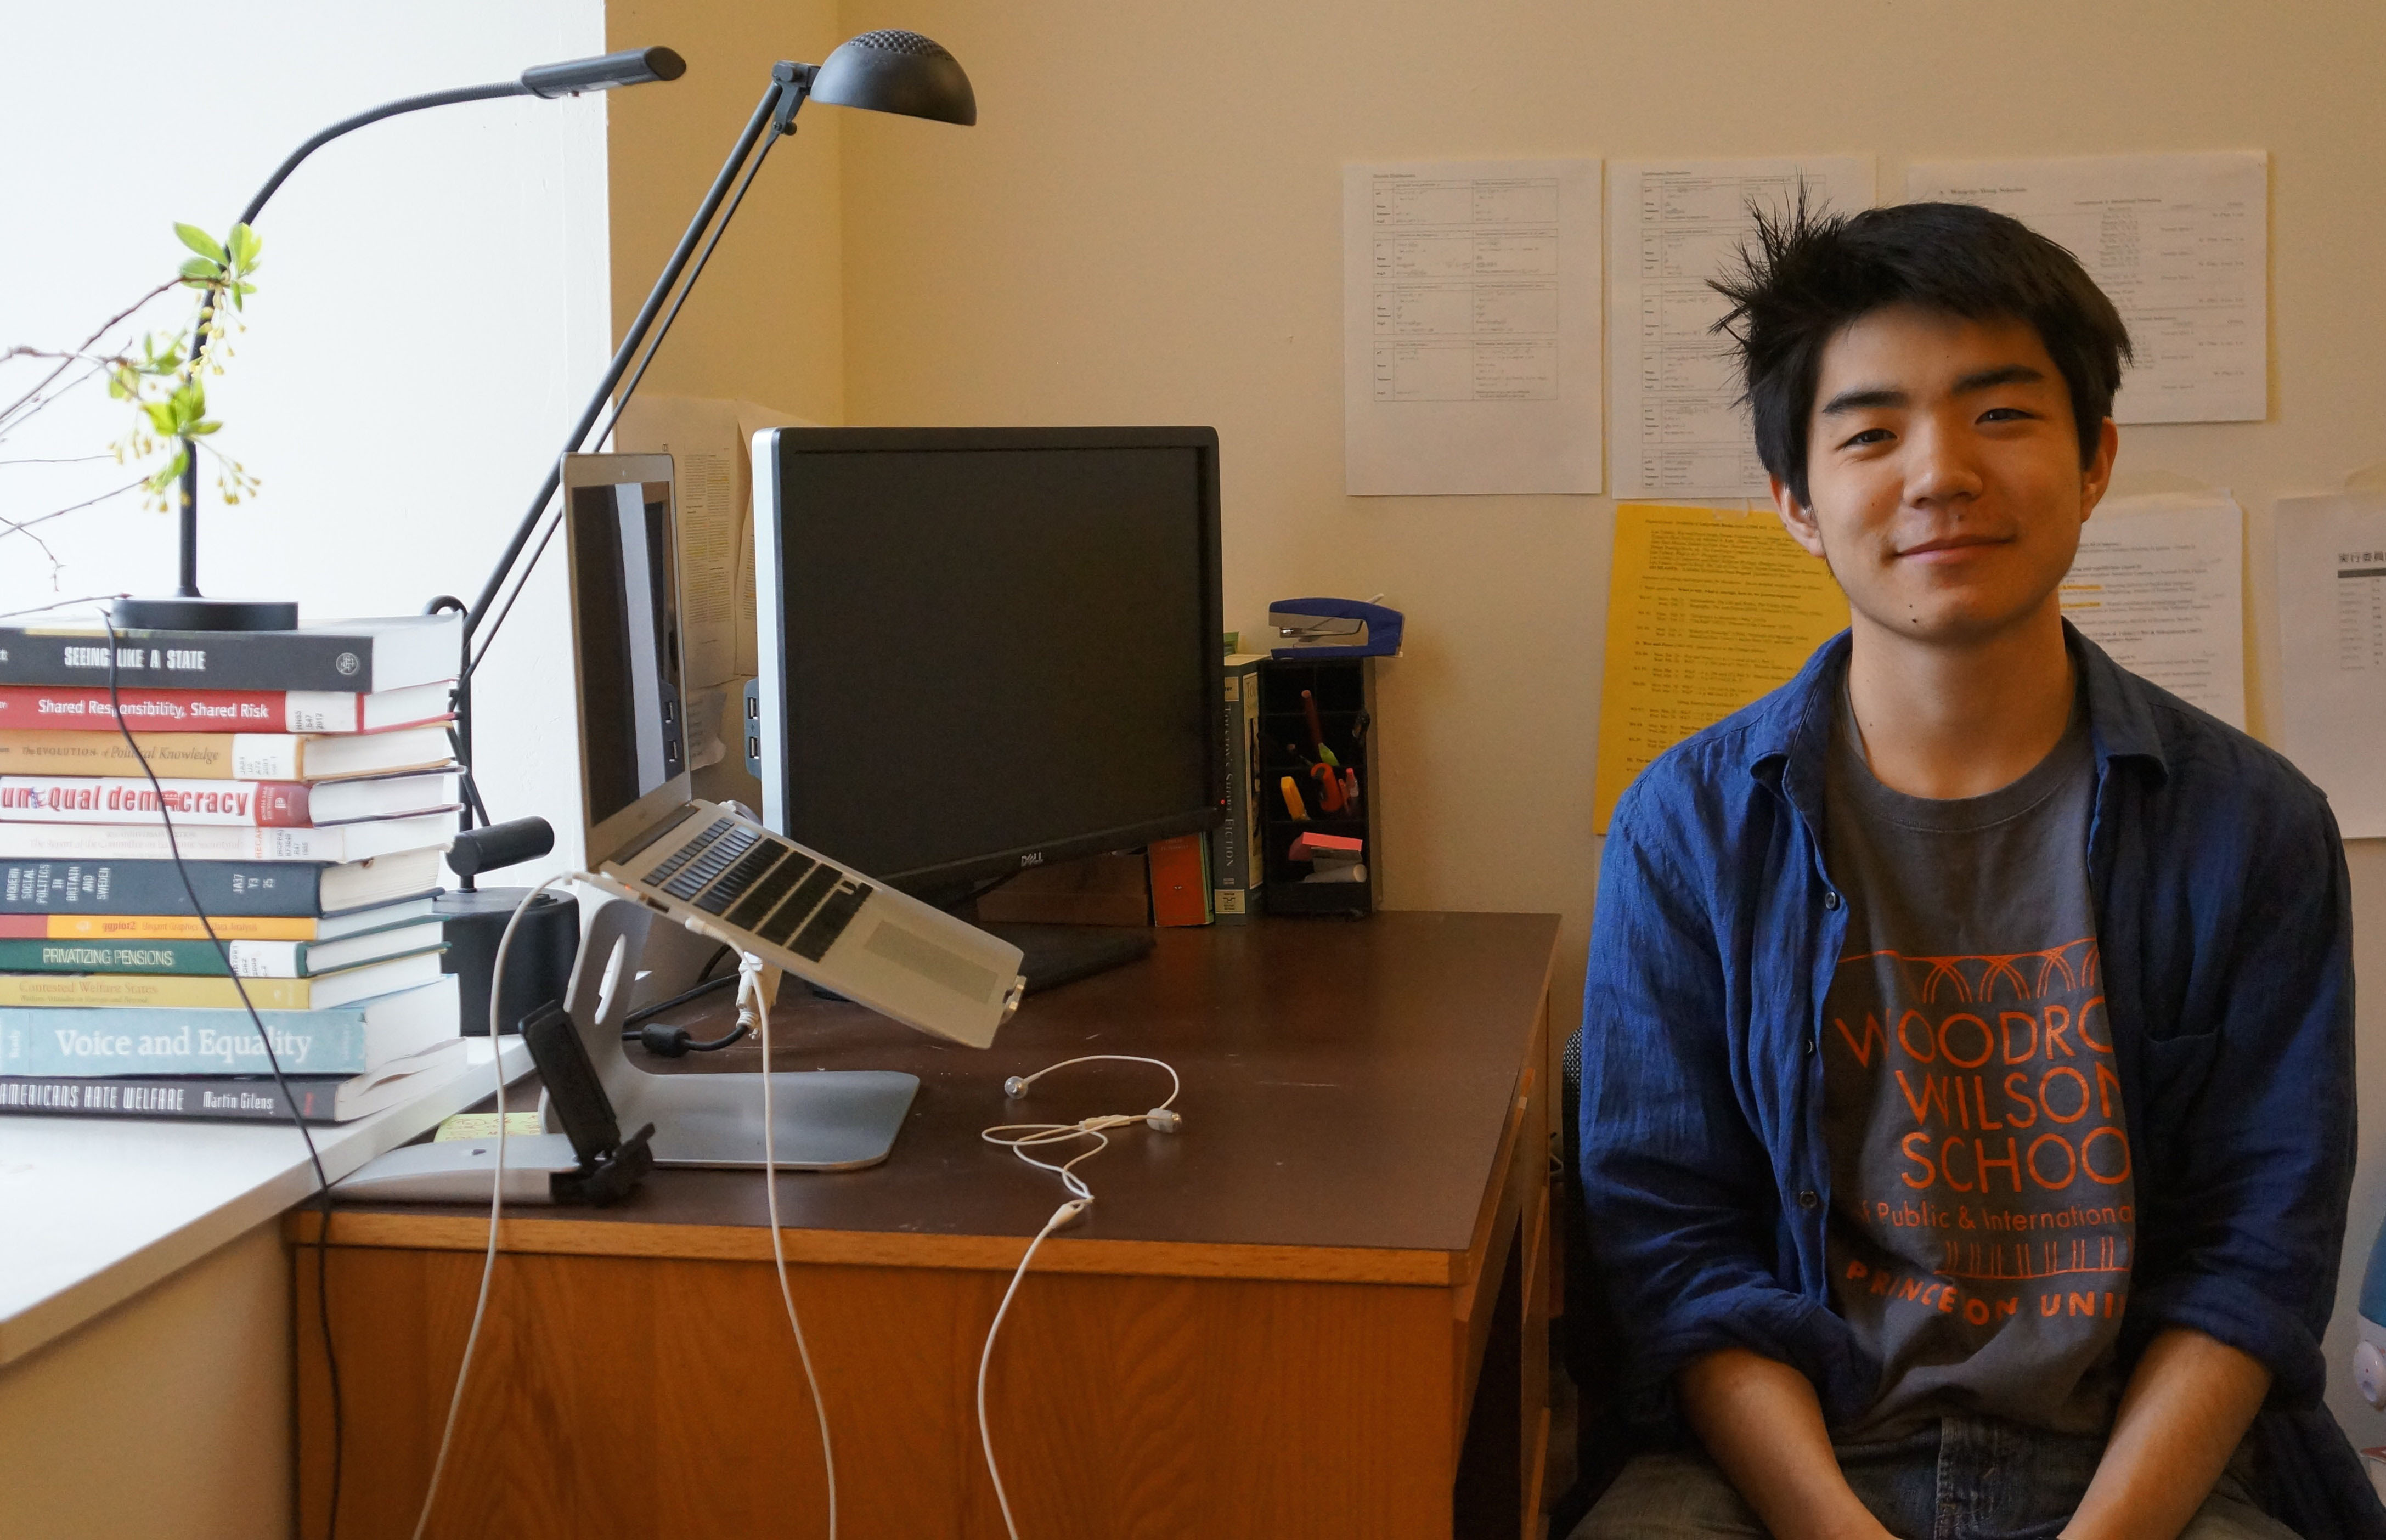 Looking east: Shiro Kuriwaki sports a Woodrow Wilson School of Public and International Affairs T-shirt in his dorm in Princeton, New Jersey.